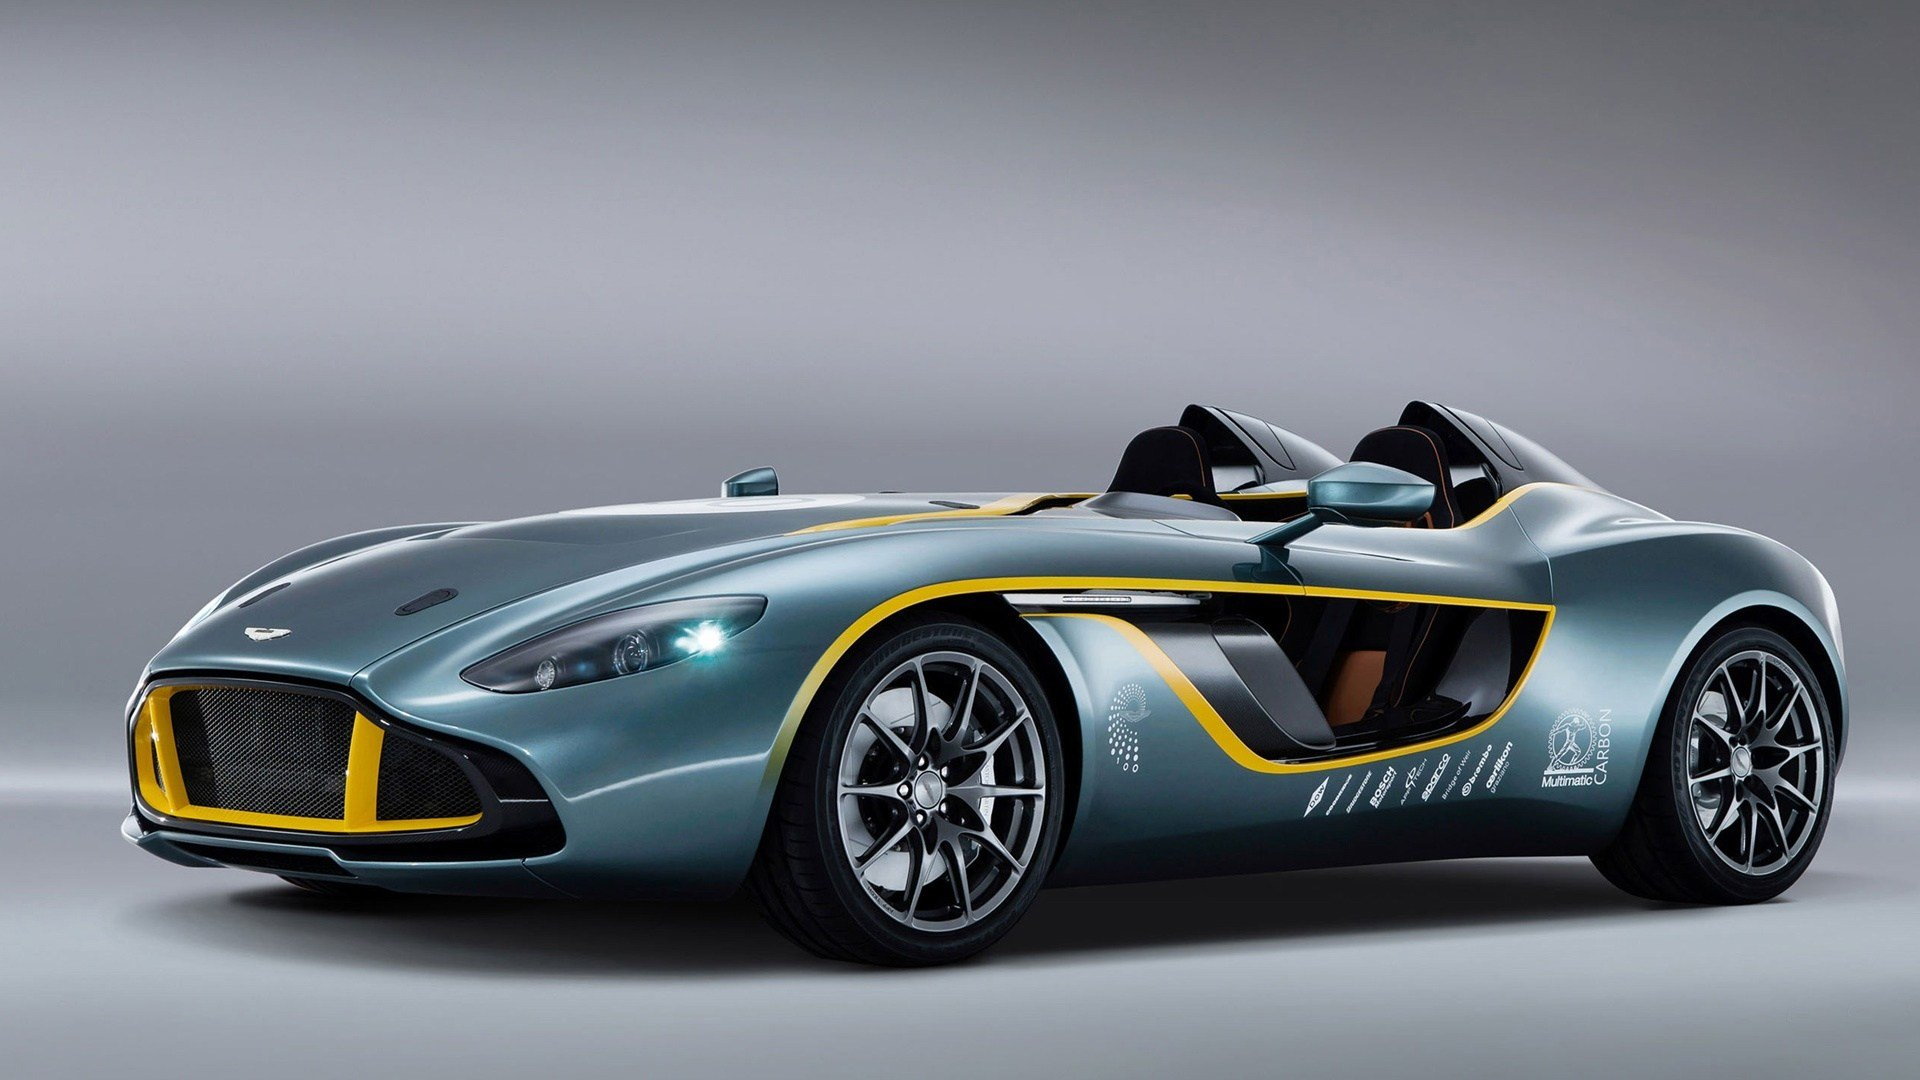 Latest Full Hd Wallpaper Aston Martin Stickers Sport Car Coupe Free Download